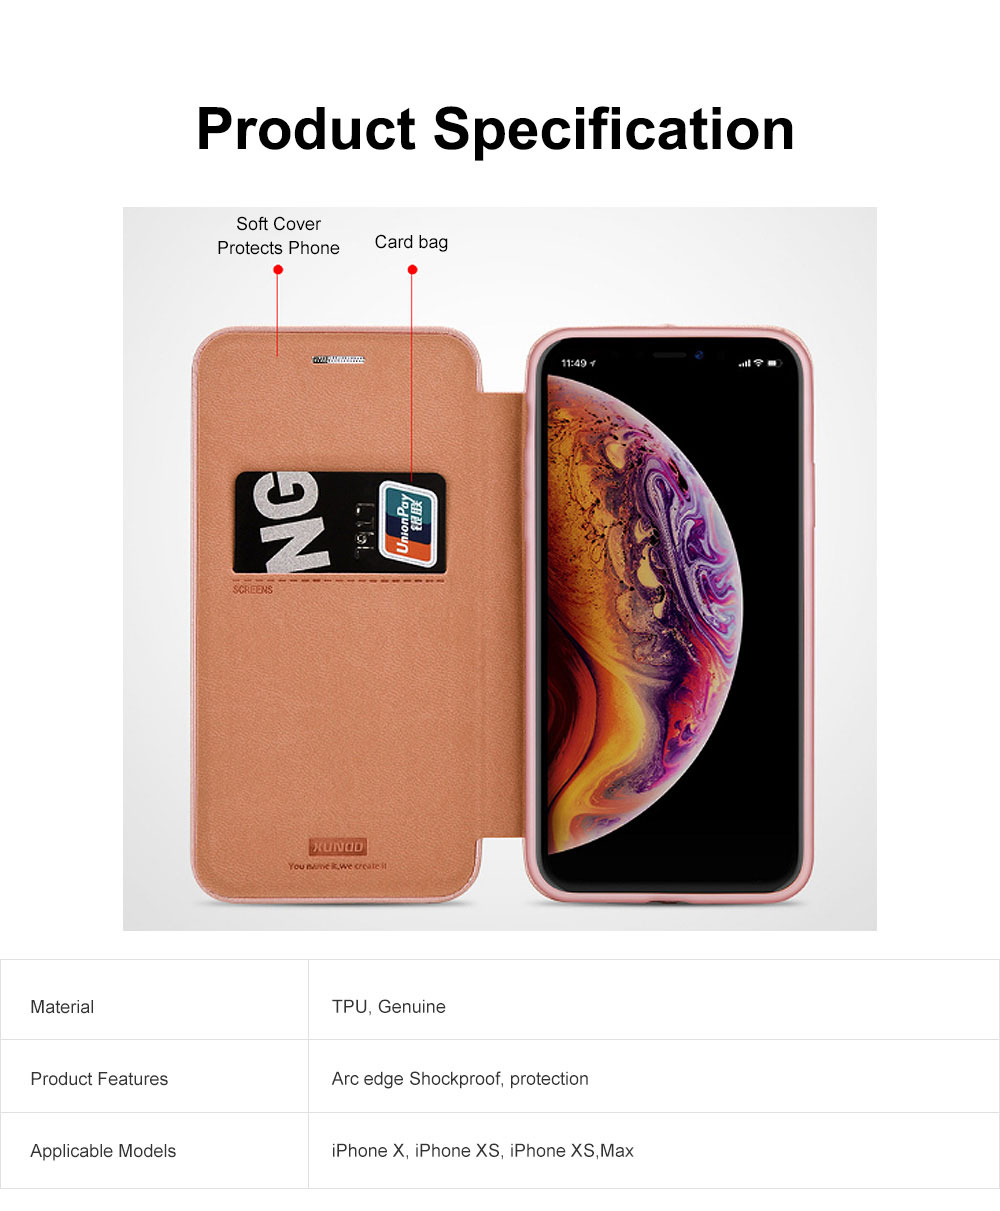 Flexible & Wear-resistant Arc Border Protection Clamshell Mobile Phone Shell with Genuine Leather Protective Back Cover For iPhone X XS, XS Max, 6 6S, 6S Plus XR 7 8, 8 Plus 7